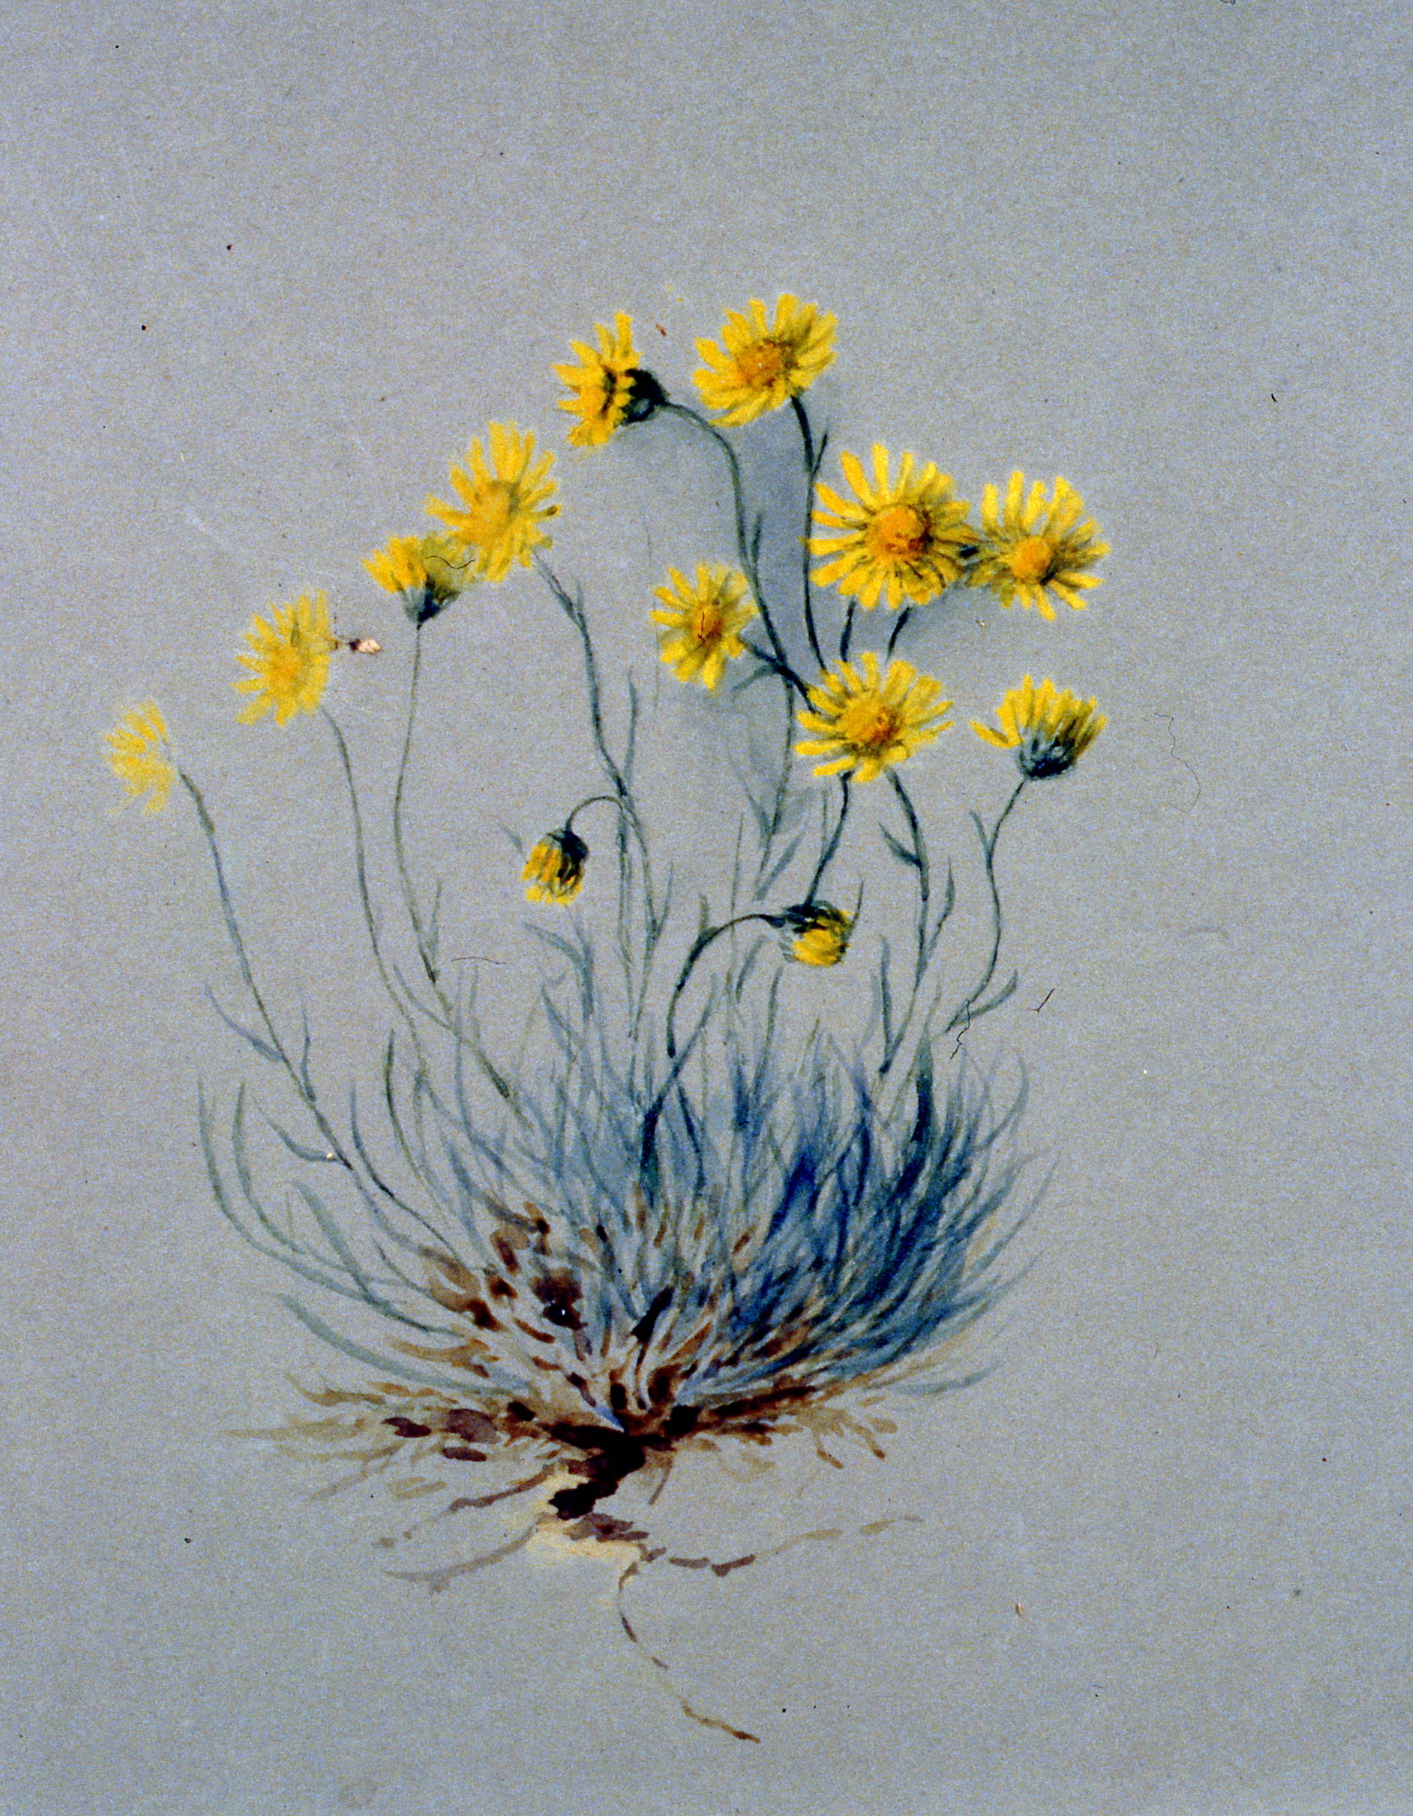 Untitled (Yellow Erigiron Daisies), 1895, Julia Bullock-Webster, watercolour on paper, 24.9 x 35.5 cm, 1983.02.21. Gift of Mrs. Barbara Steel.